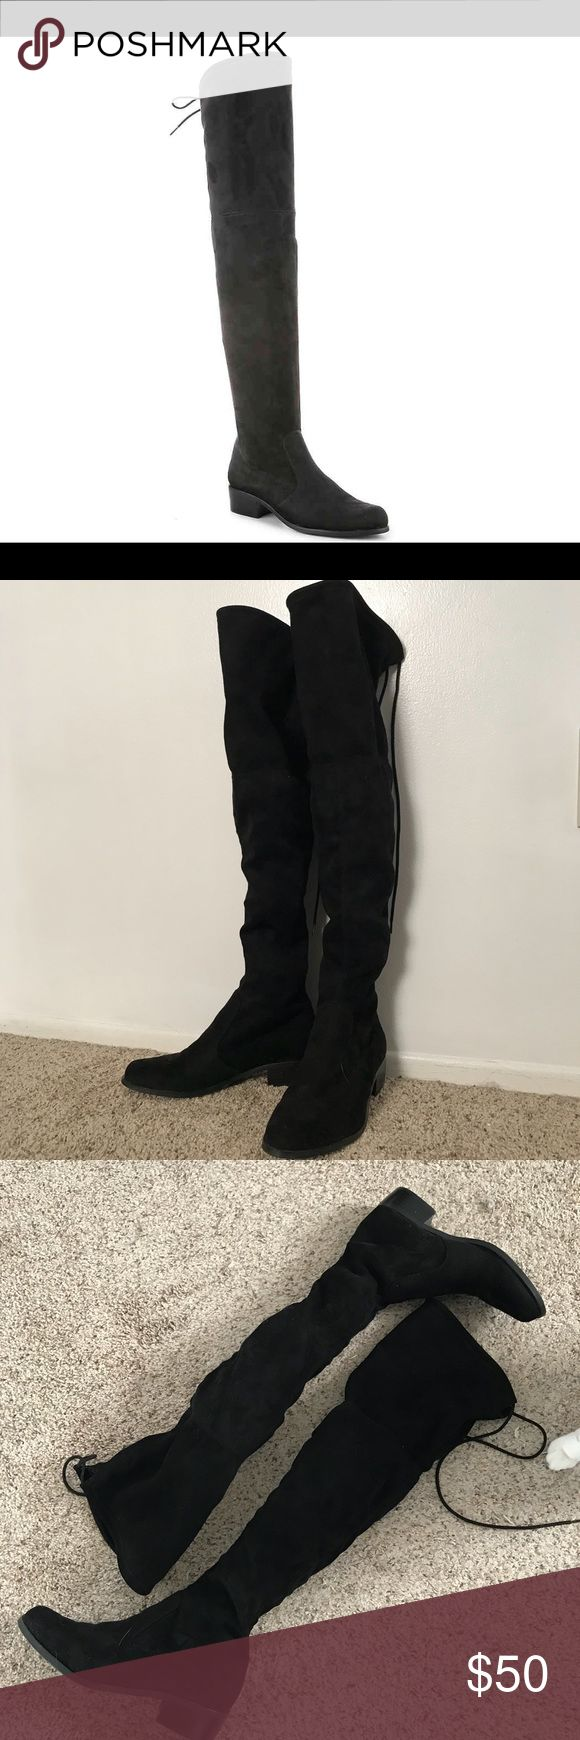 """Black over the knee faux suede flat boots Black Charles by Charles David over the knee flat boots. Worn for a handful of times, still in great condition. Very cute! Go with any outfit. Please feel free to make a reasonable offer. 👇  Stretch faux suede upper Top line lacing for secure fit 21 1/2"""" shaft height, pull on 12"""" calf circumference Fabric lining 1 1/2"""" stacked heels Synthetic sole Charles David Shoes Over the Knee Boots"""